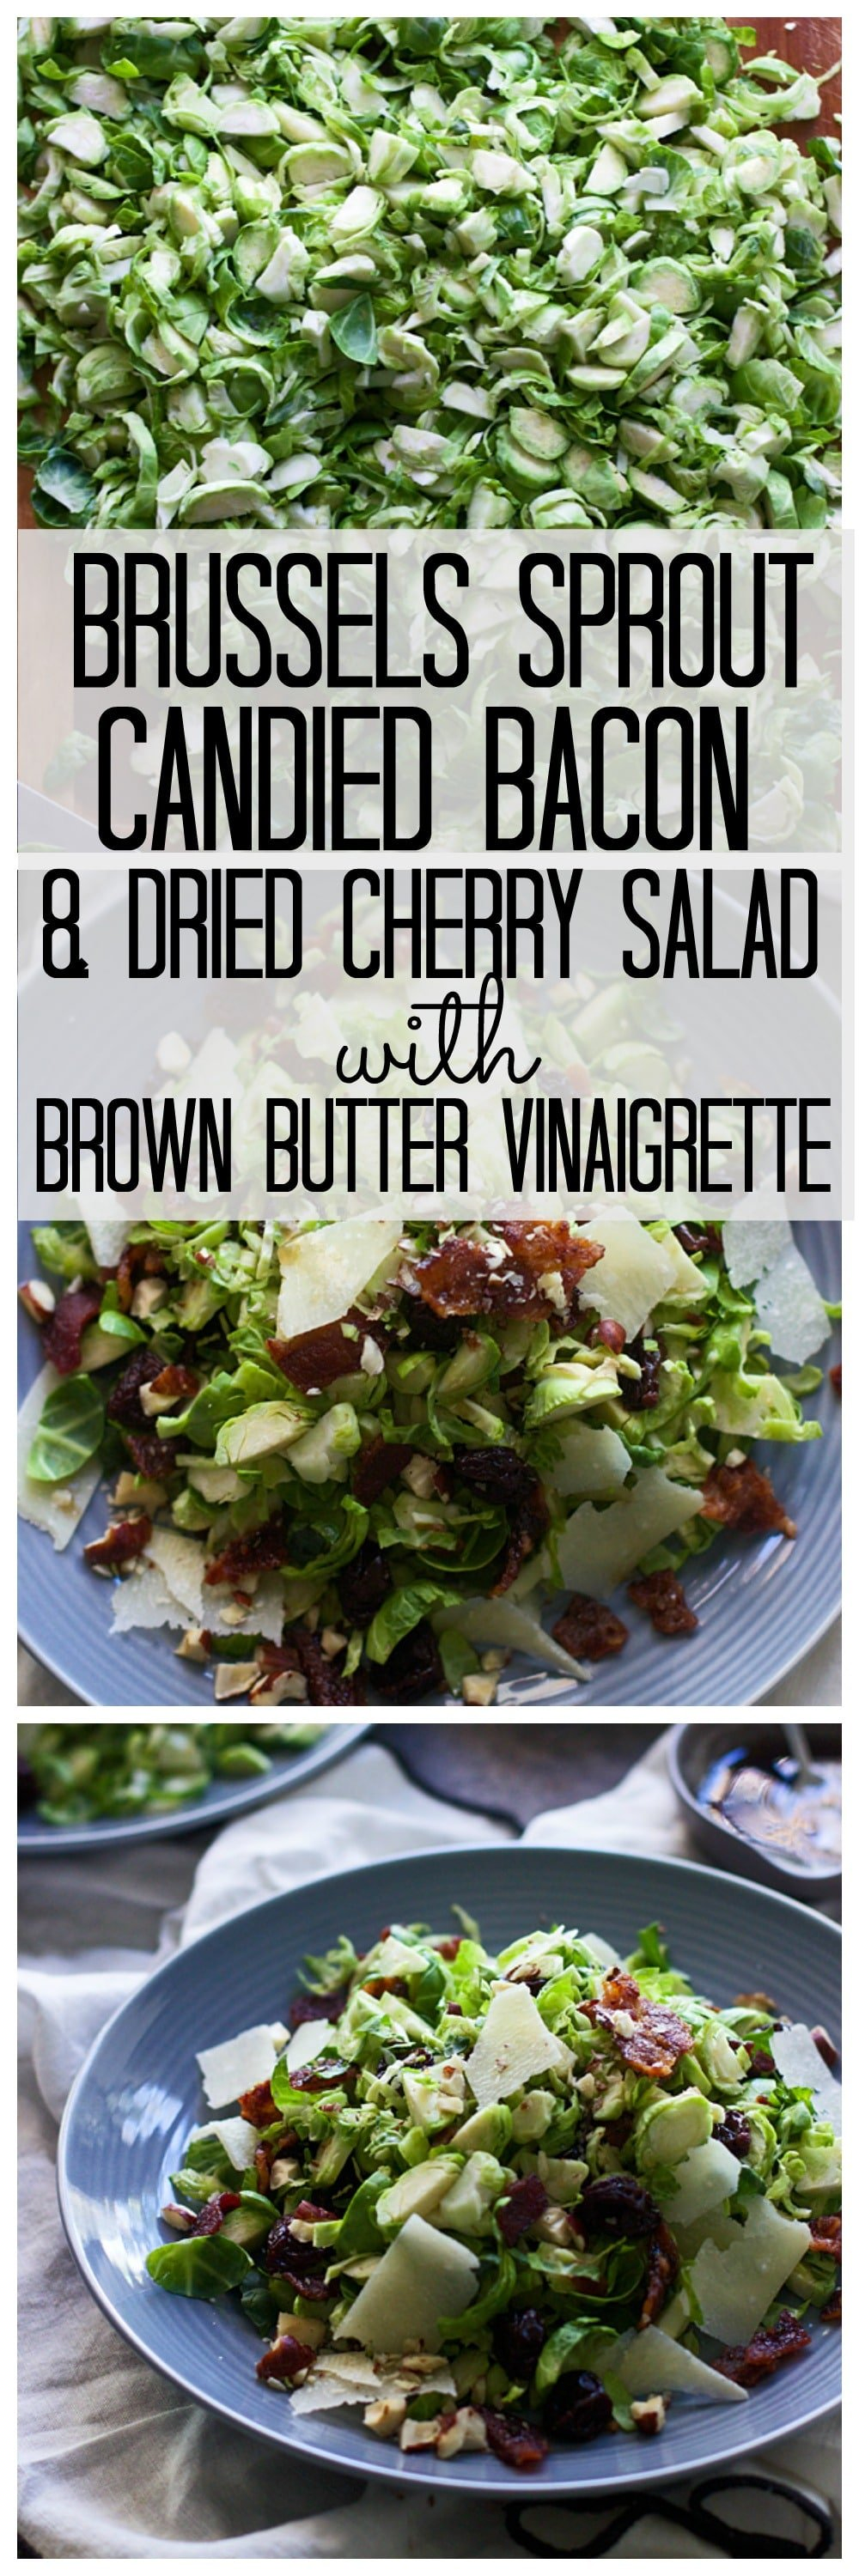 Brussels Sprout, Candied Bacon and Dried Cherry Salad with Brown Butter Vinaigrette